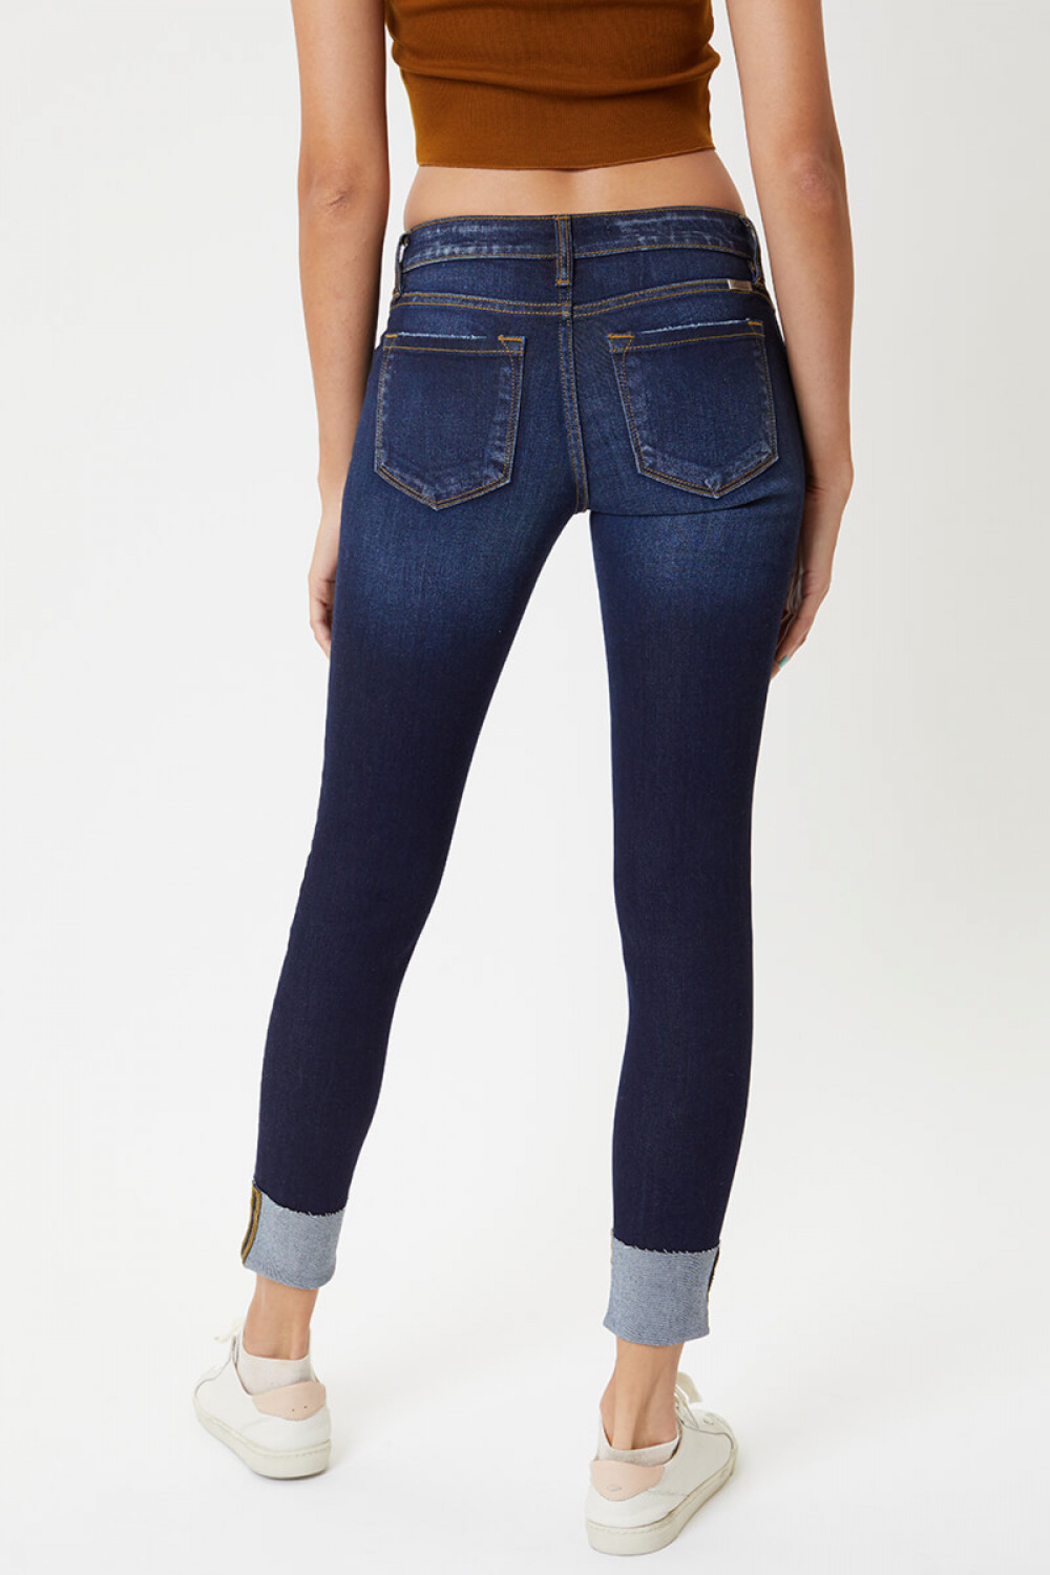 KanCan Low Rise Cuffed Ankle Skinny (KC8245RD) - Front Full Image